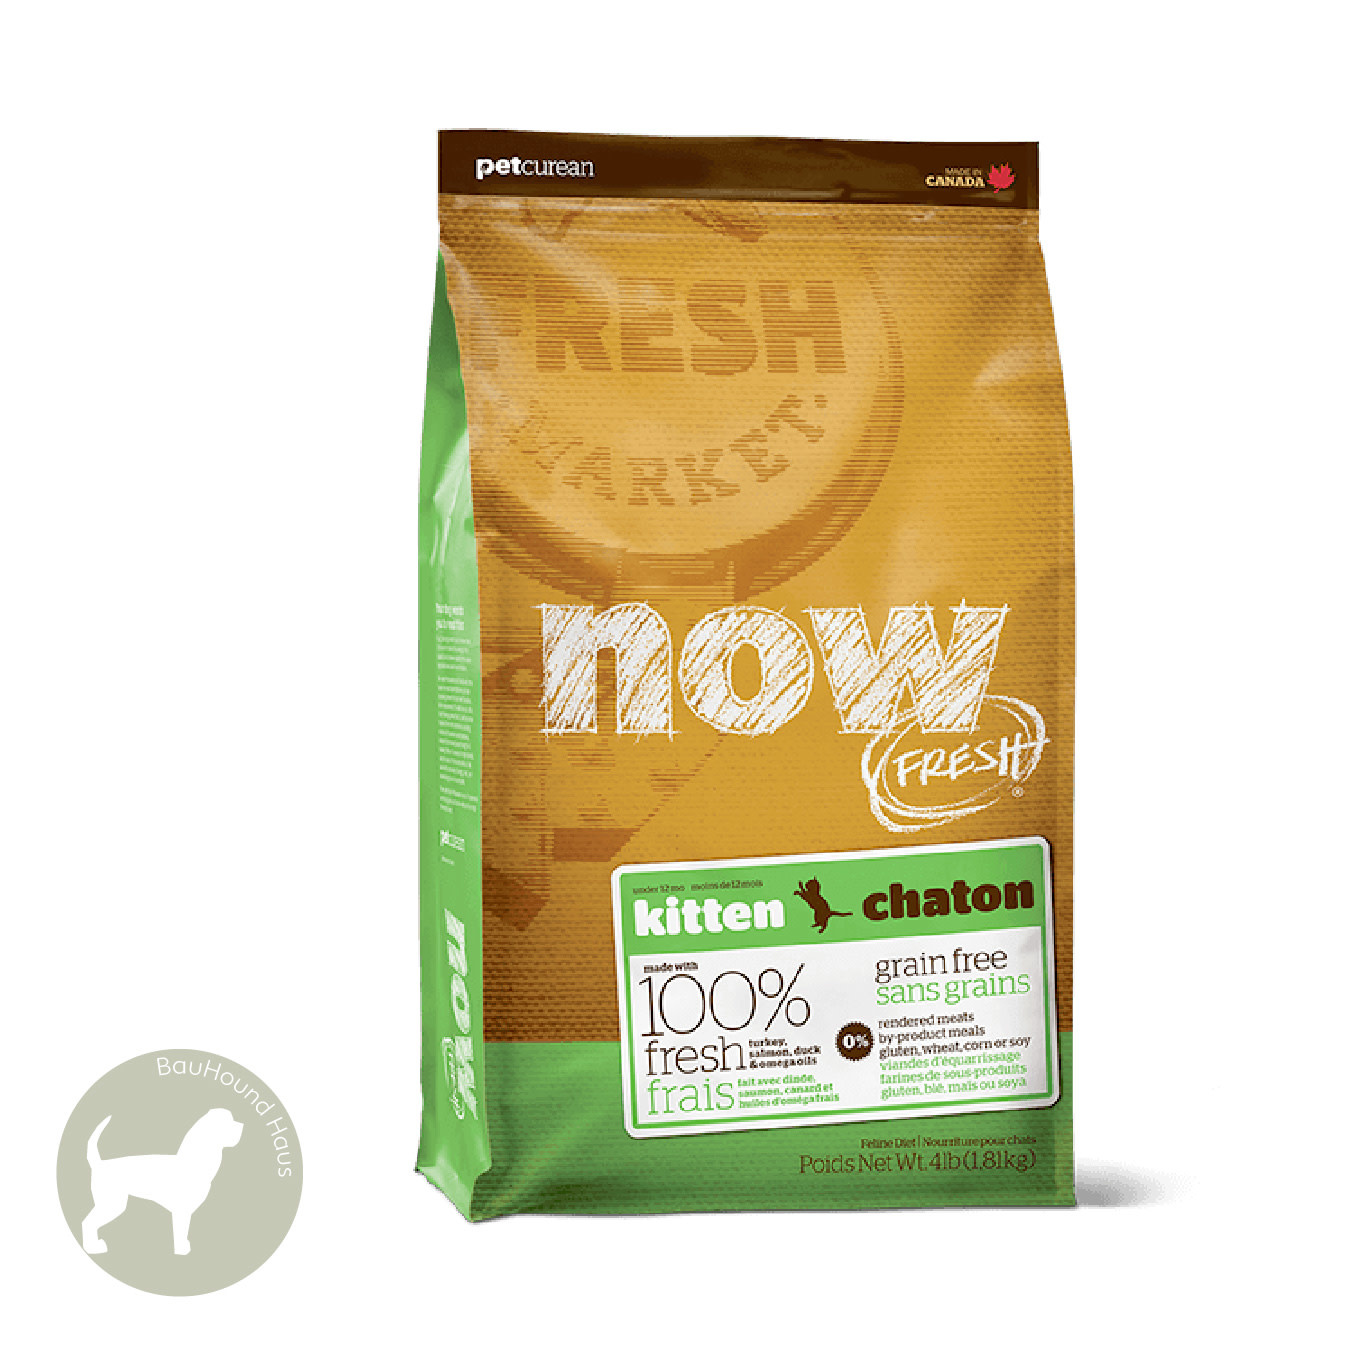 Now! Now! Fresh CAT Kitten Kibble, 4lb